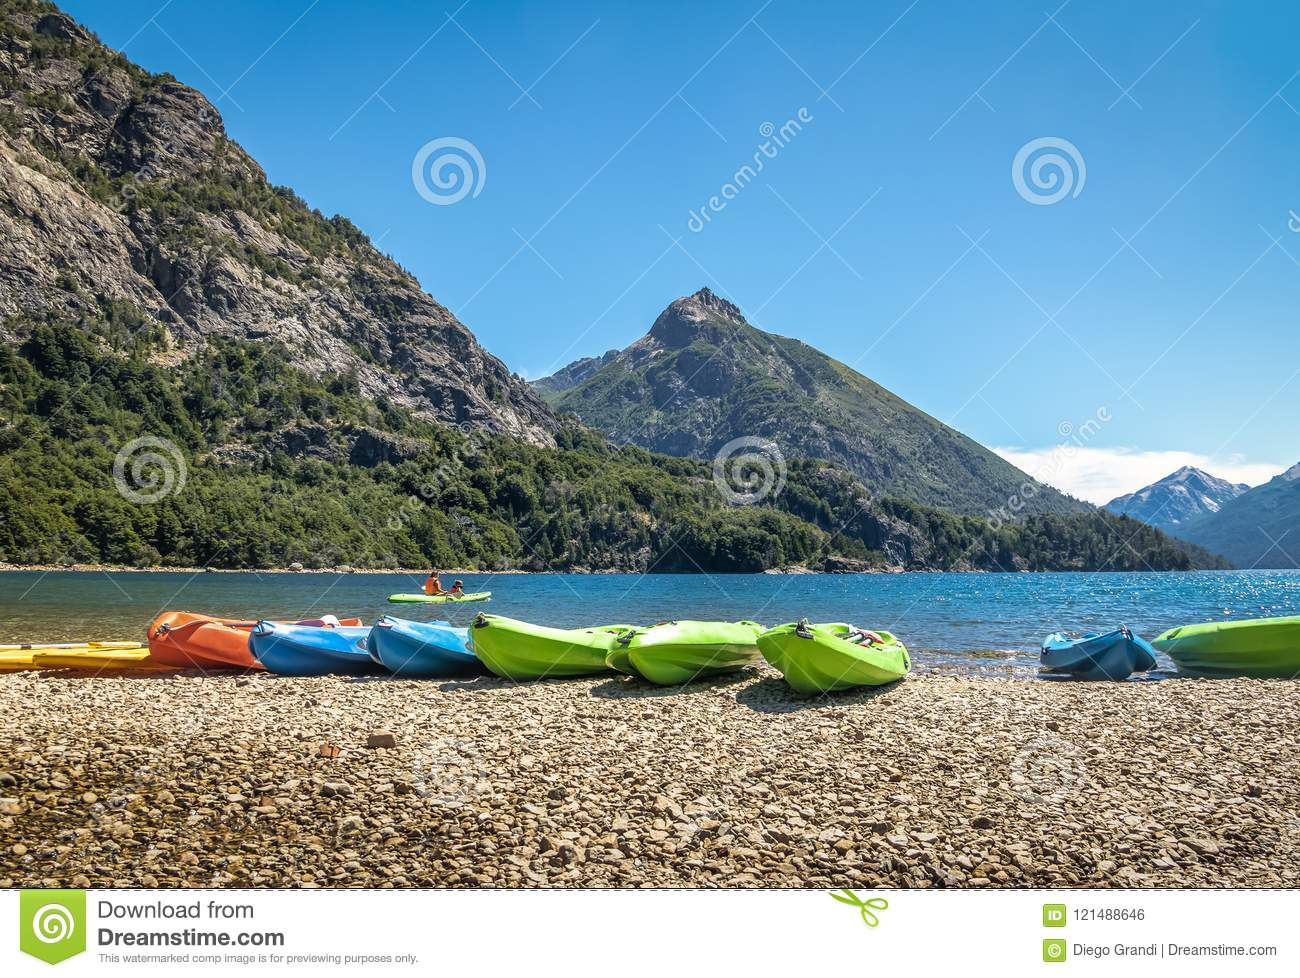 Circuito Chico Bariloche : Colorful kayaks in a lake surrounded by mountains at bahia lopez in